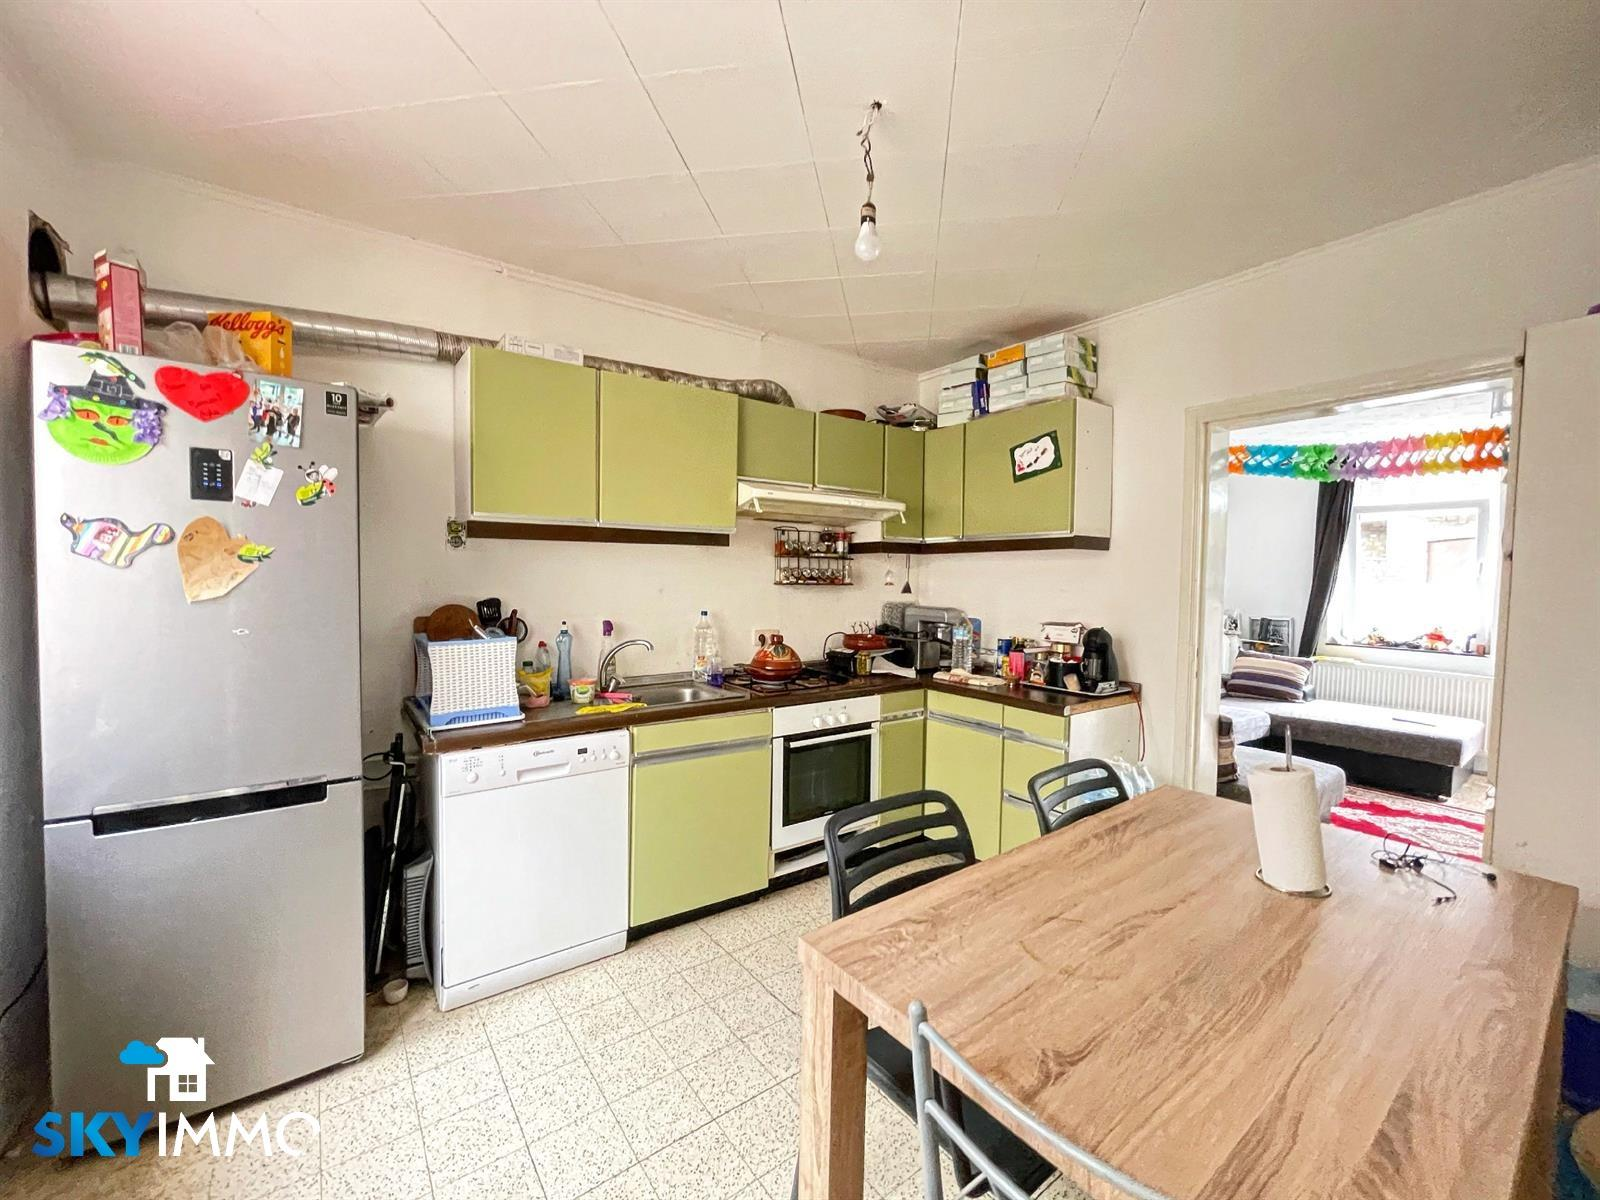 Huis - Flemalle - #4366715-4